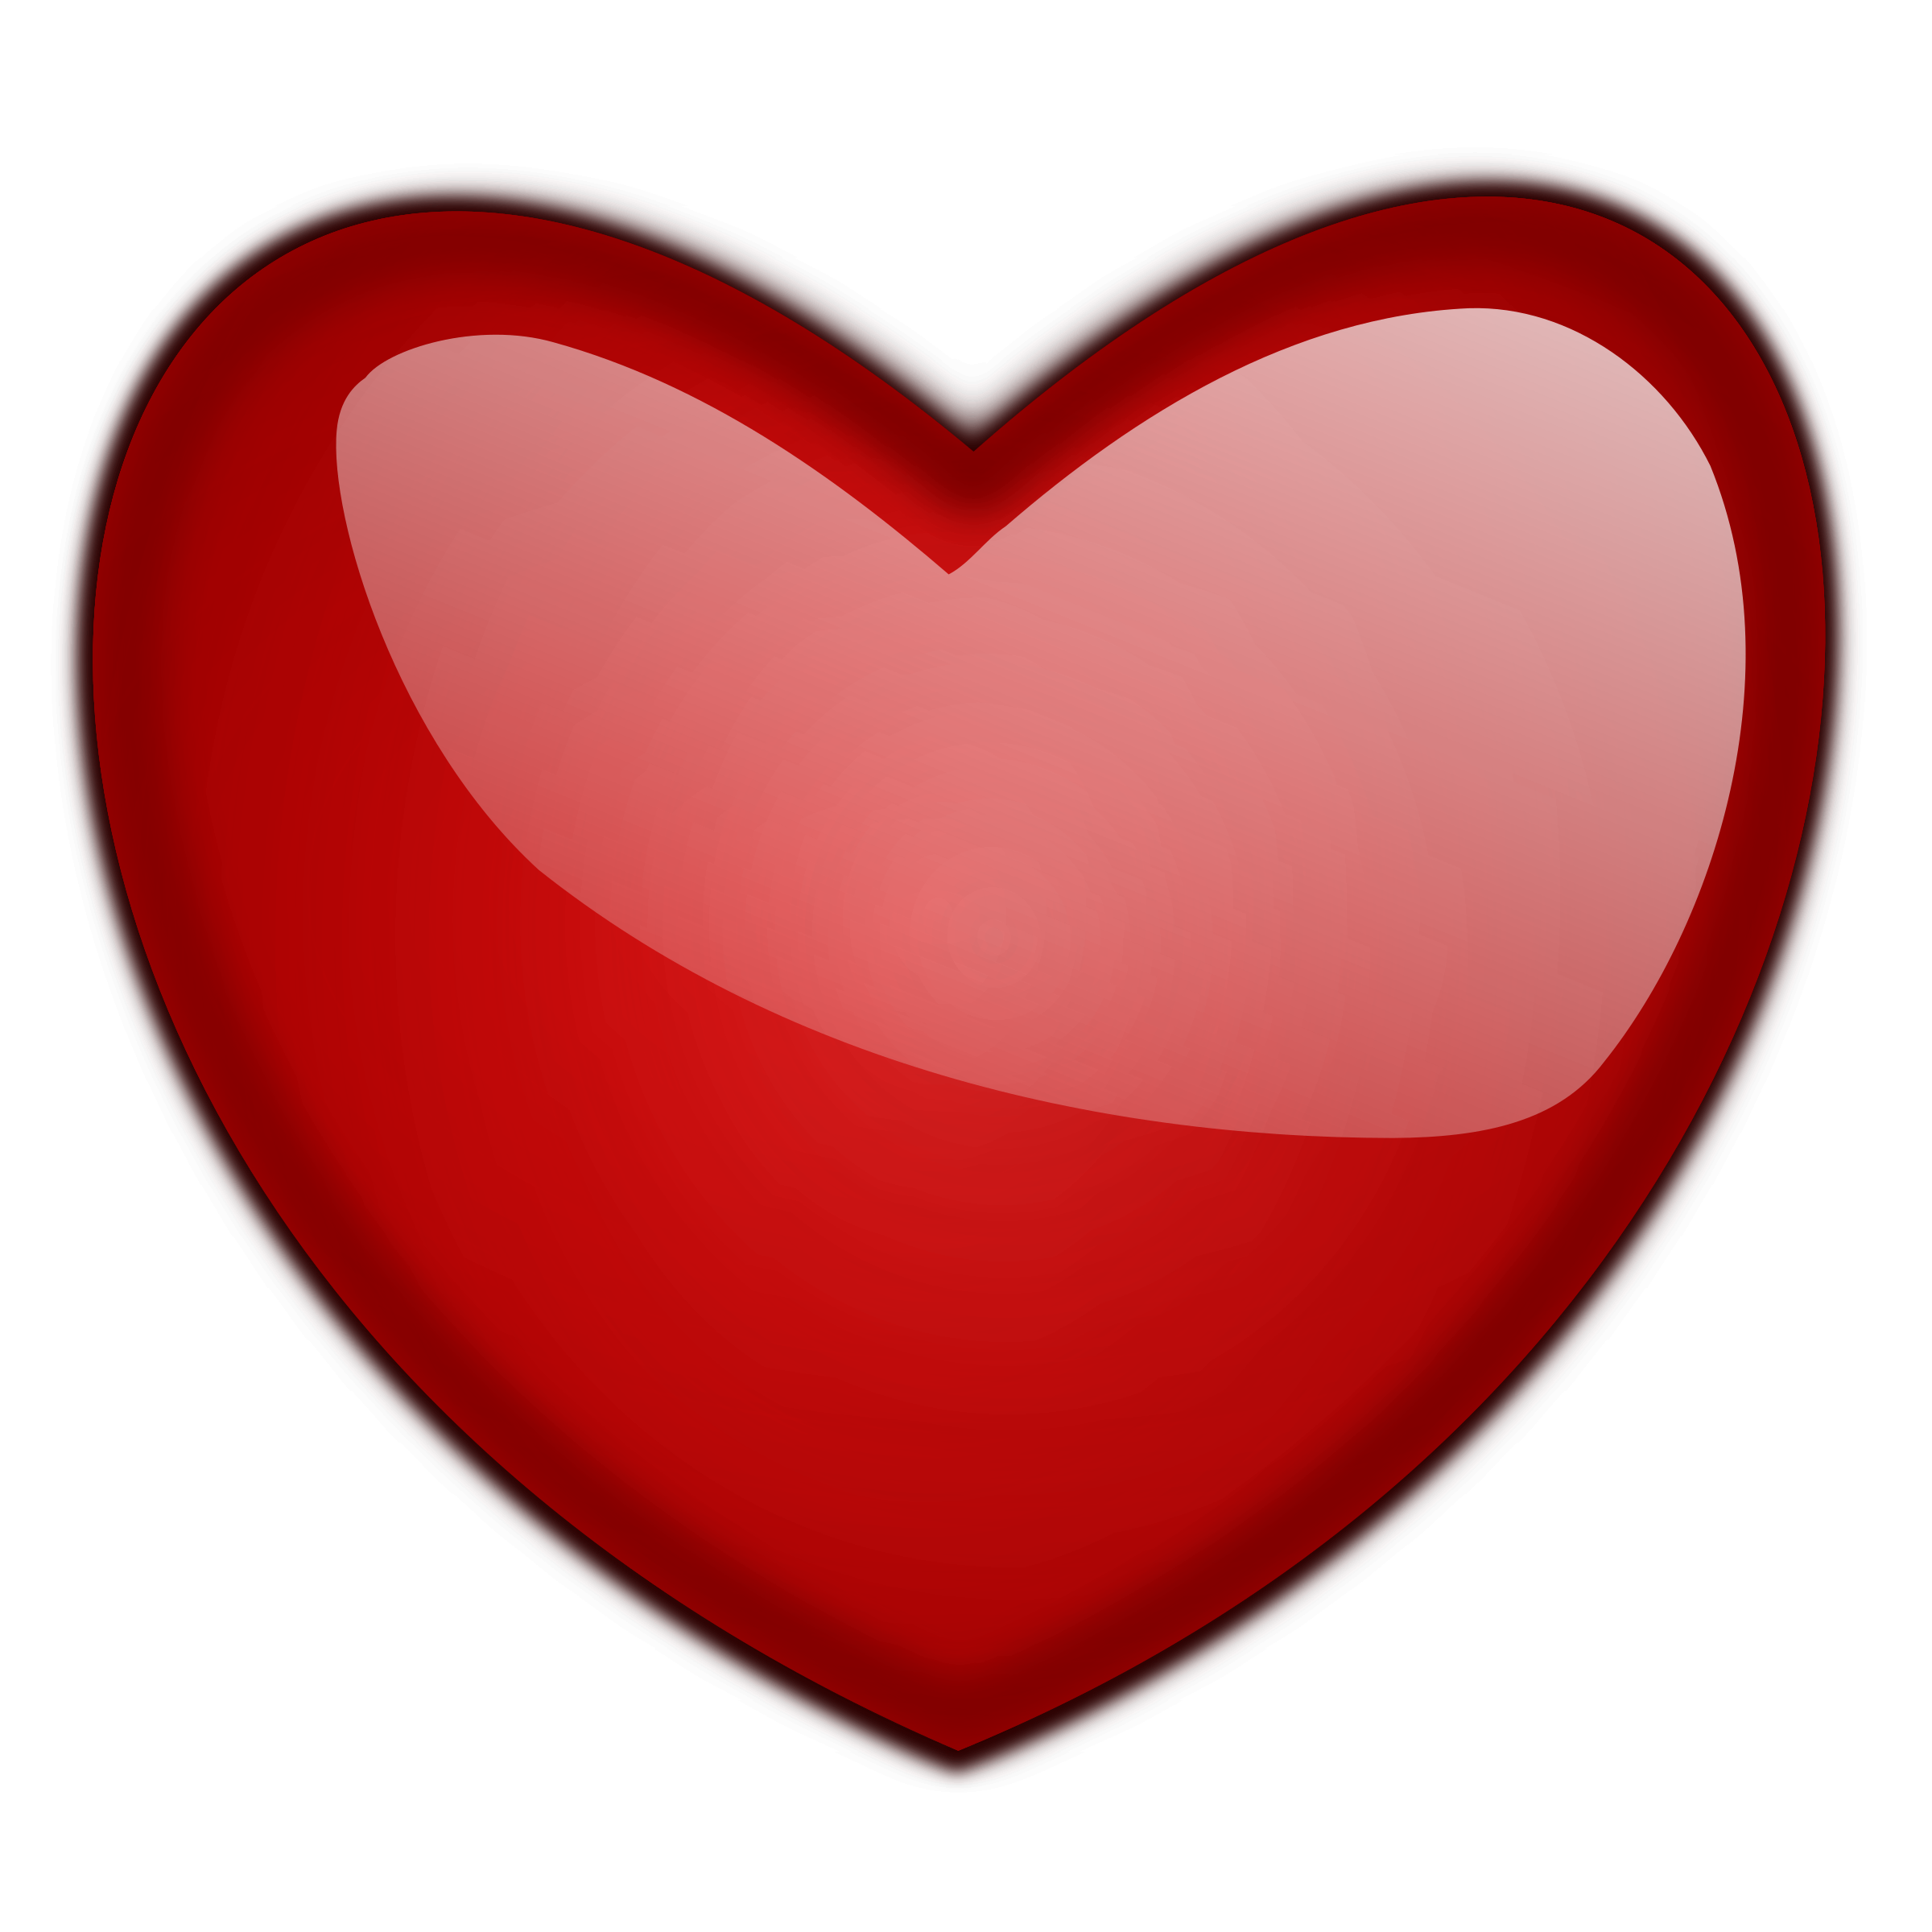 Gloss big image png. Number 1 clipart heart